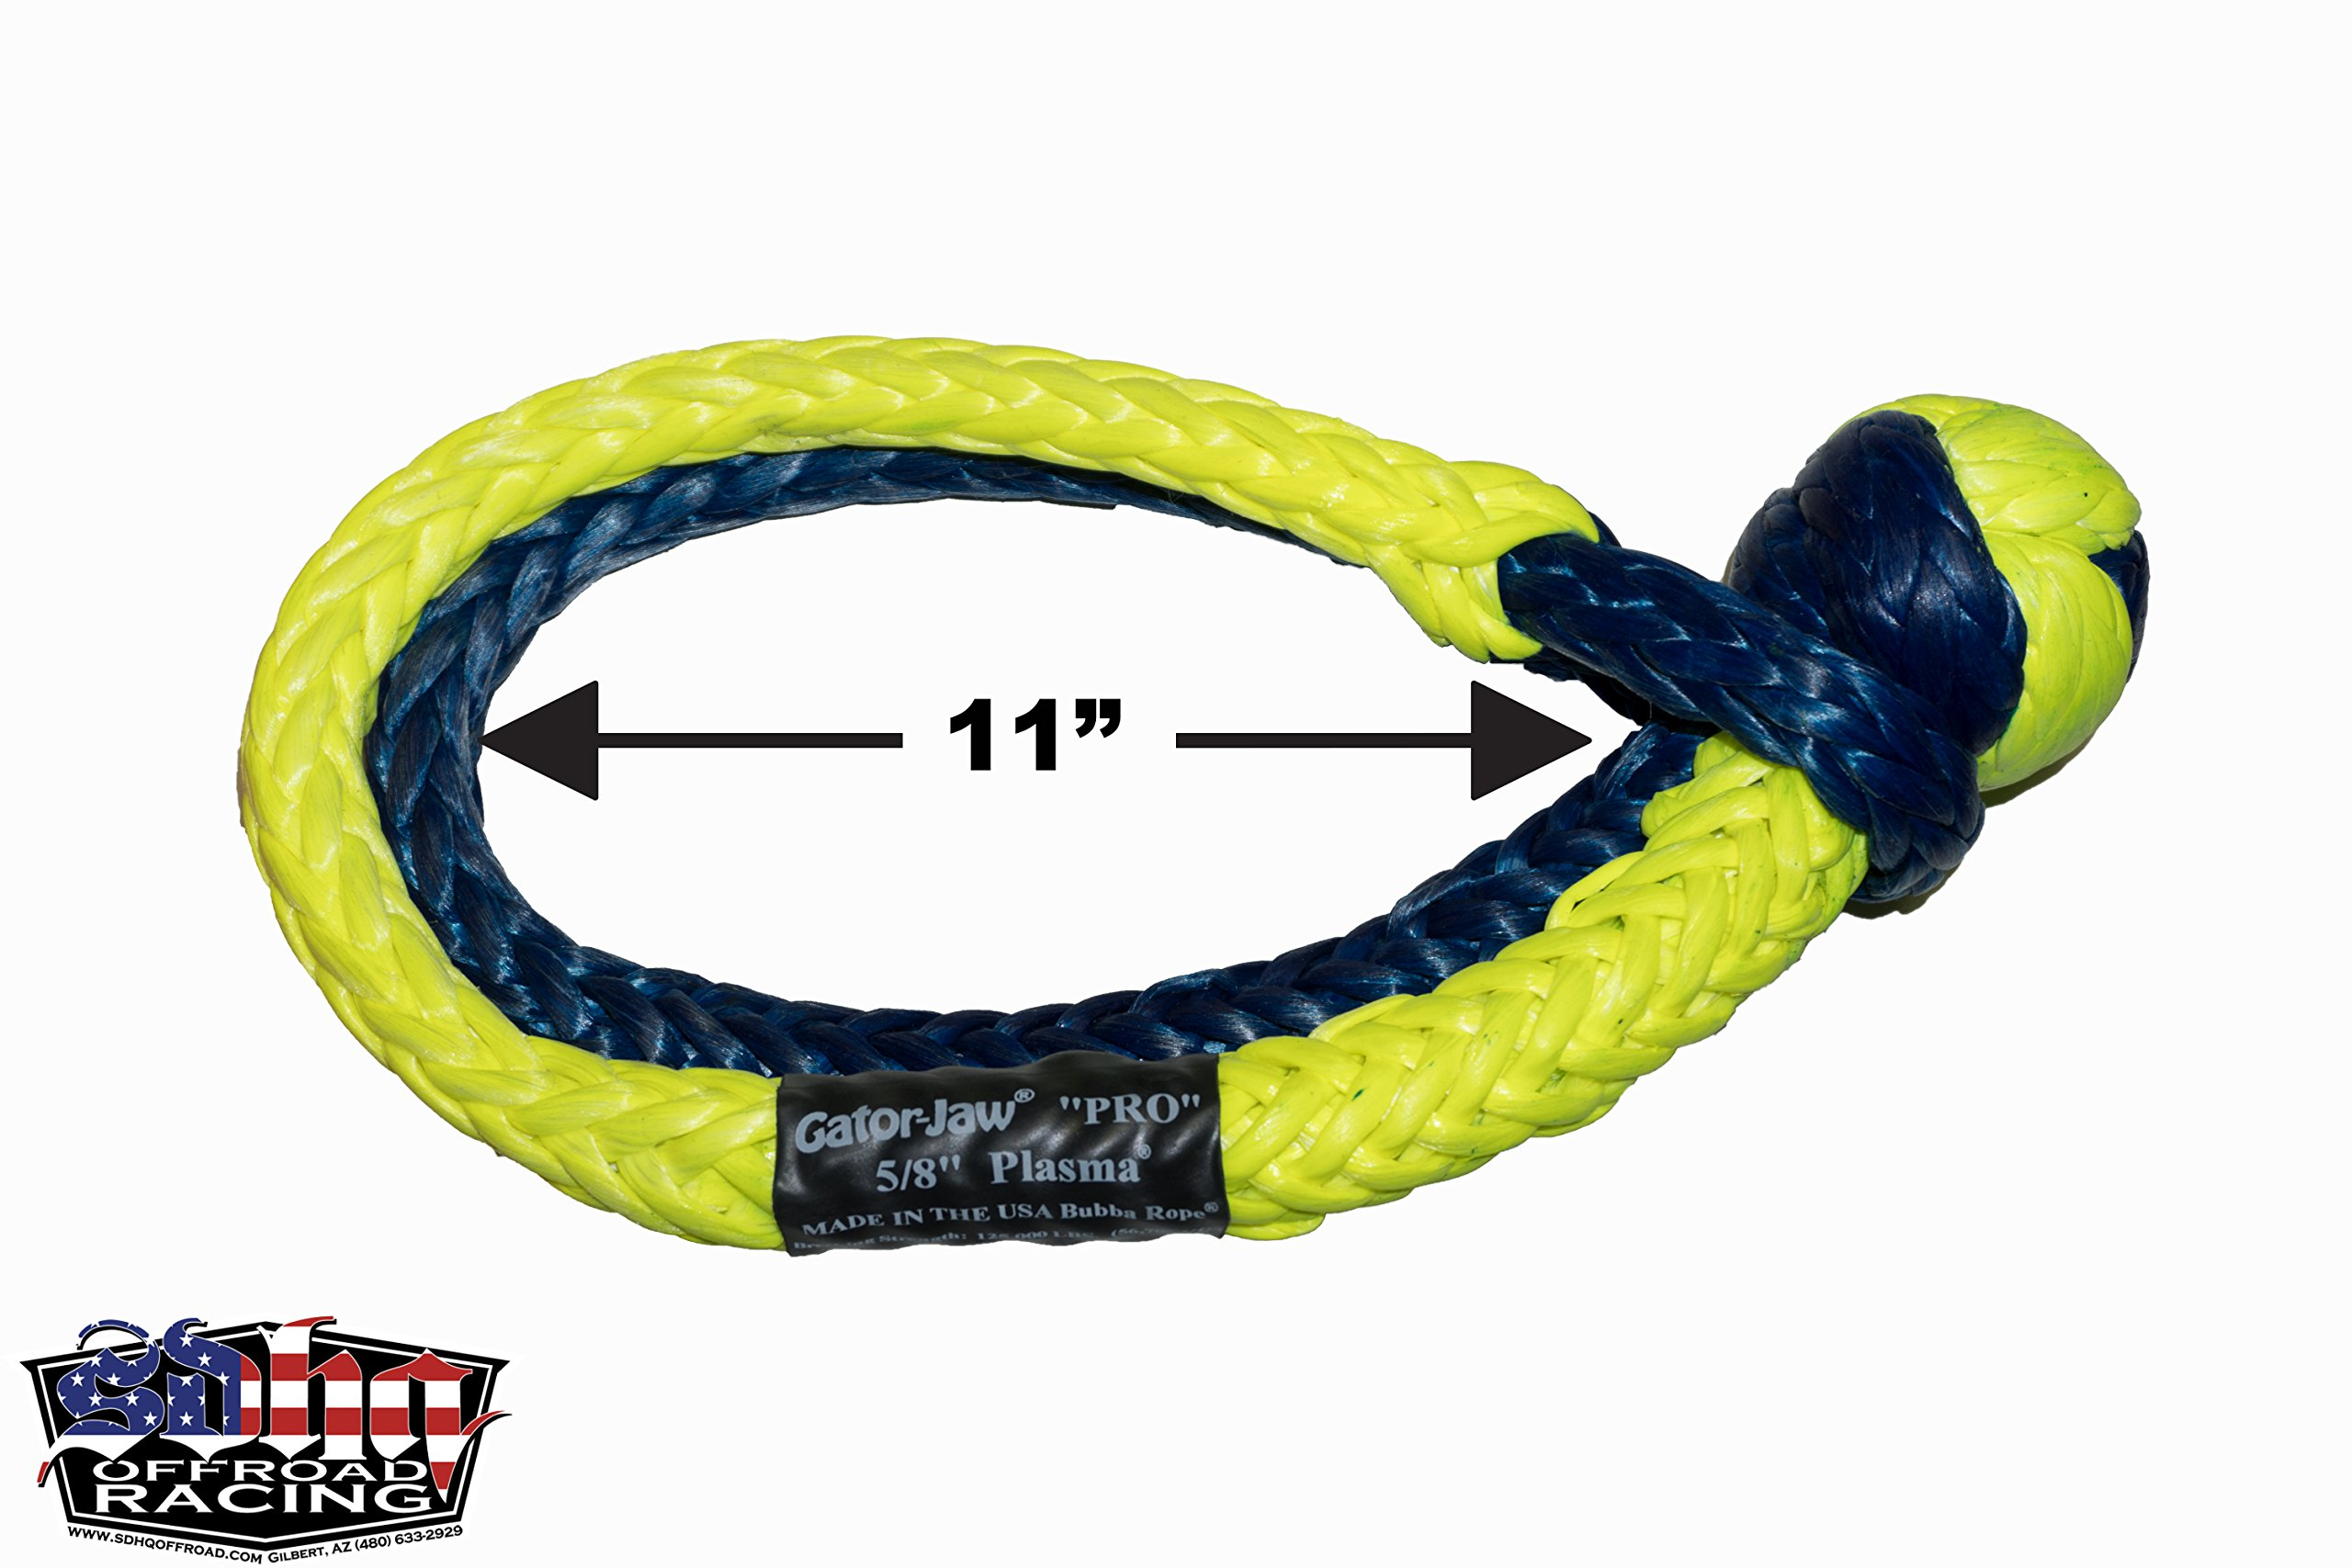 Bubba Rope GatorJaw Soft Shackle (125,000lb Breaking Strength Mega Yellow & Blue)